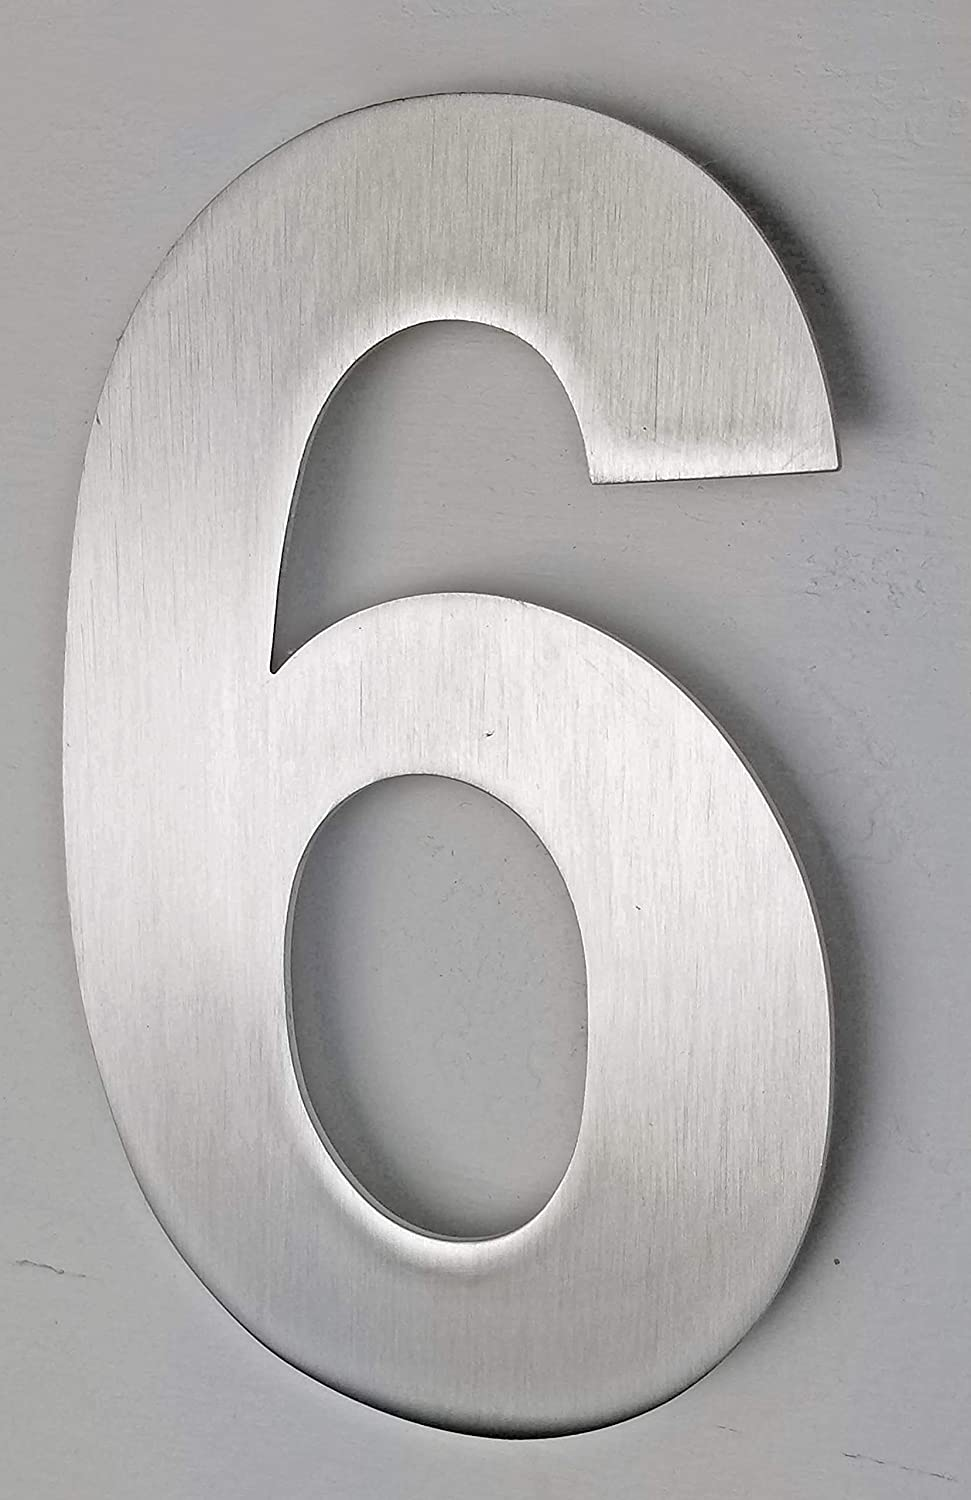 """NACH Stainless Steel Arial Number - Satin Finish Stainless Steel House Numbers for Home Decor - Hidden Anchor Mounted Address Numbers - 6""""x4""""x0.4"""""""